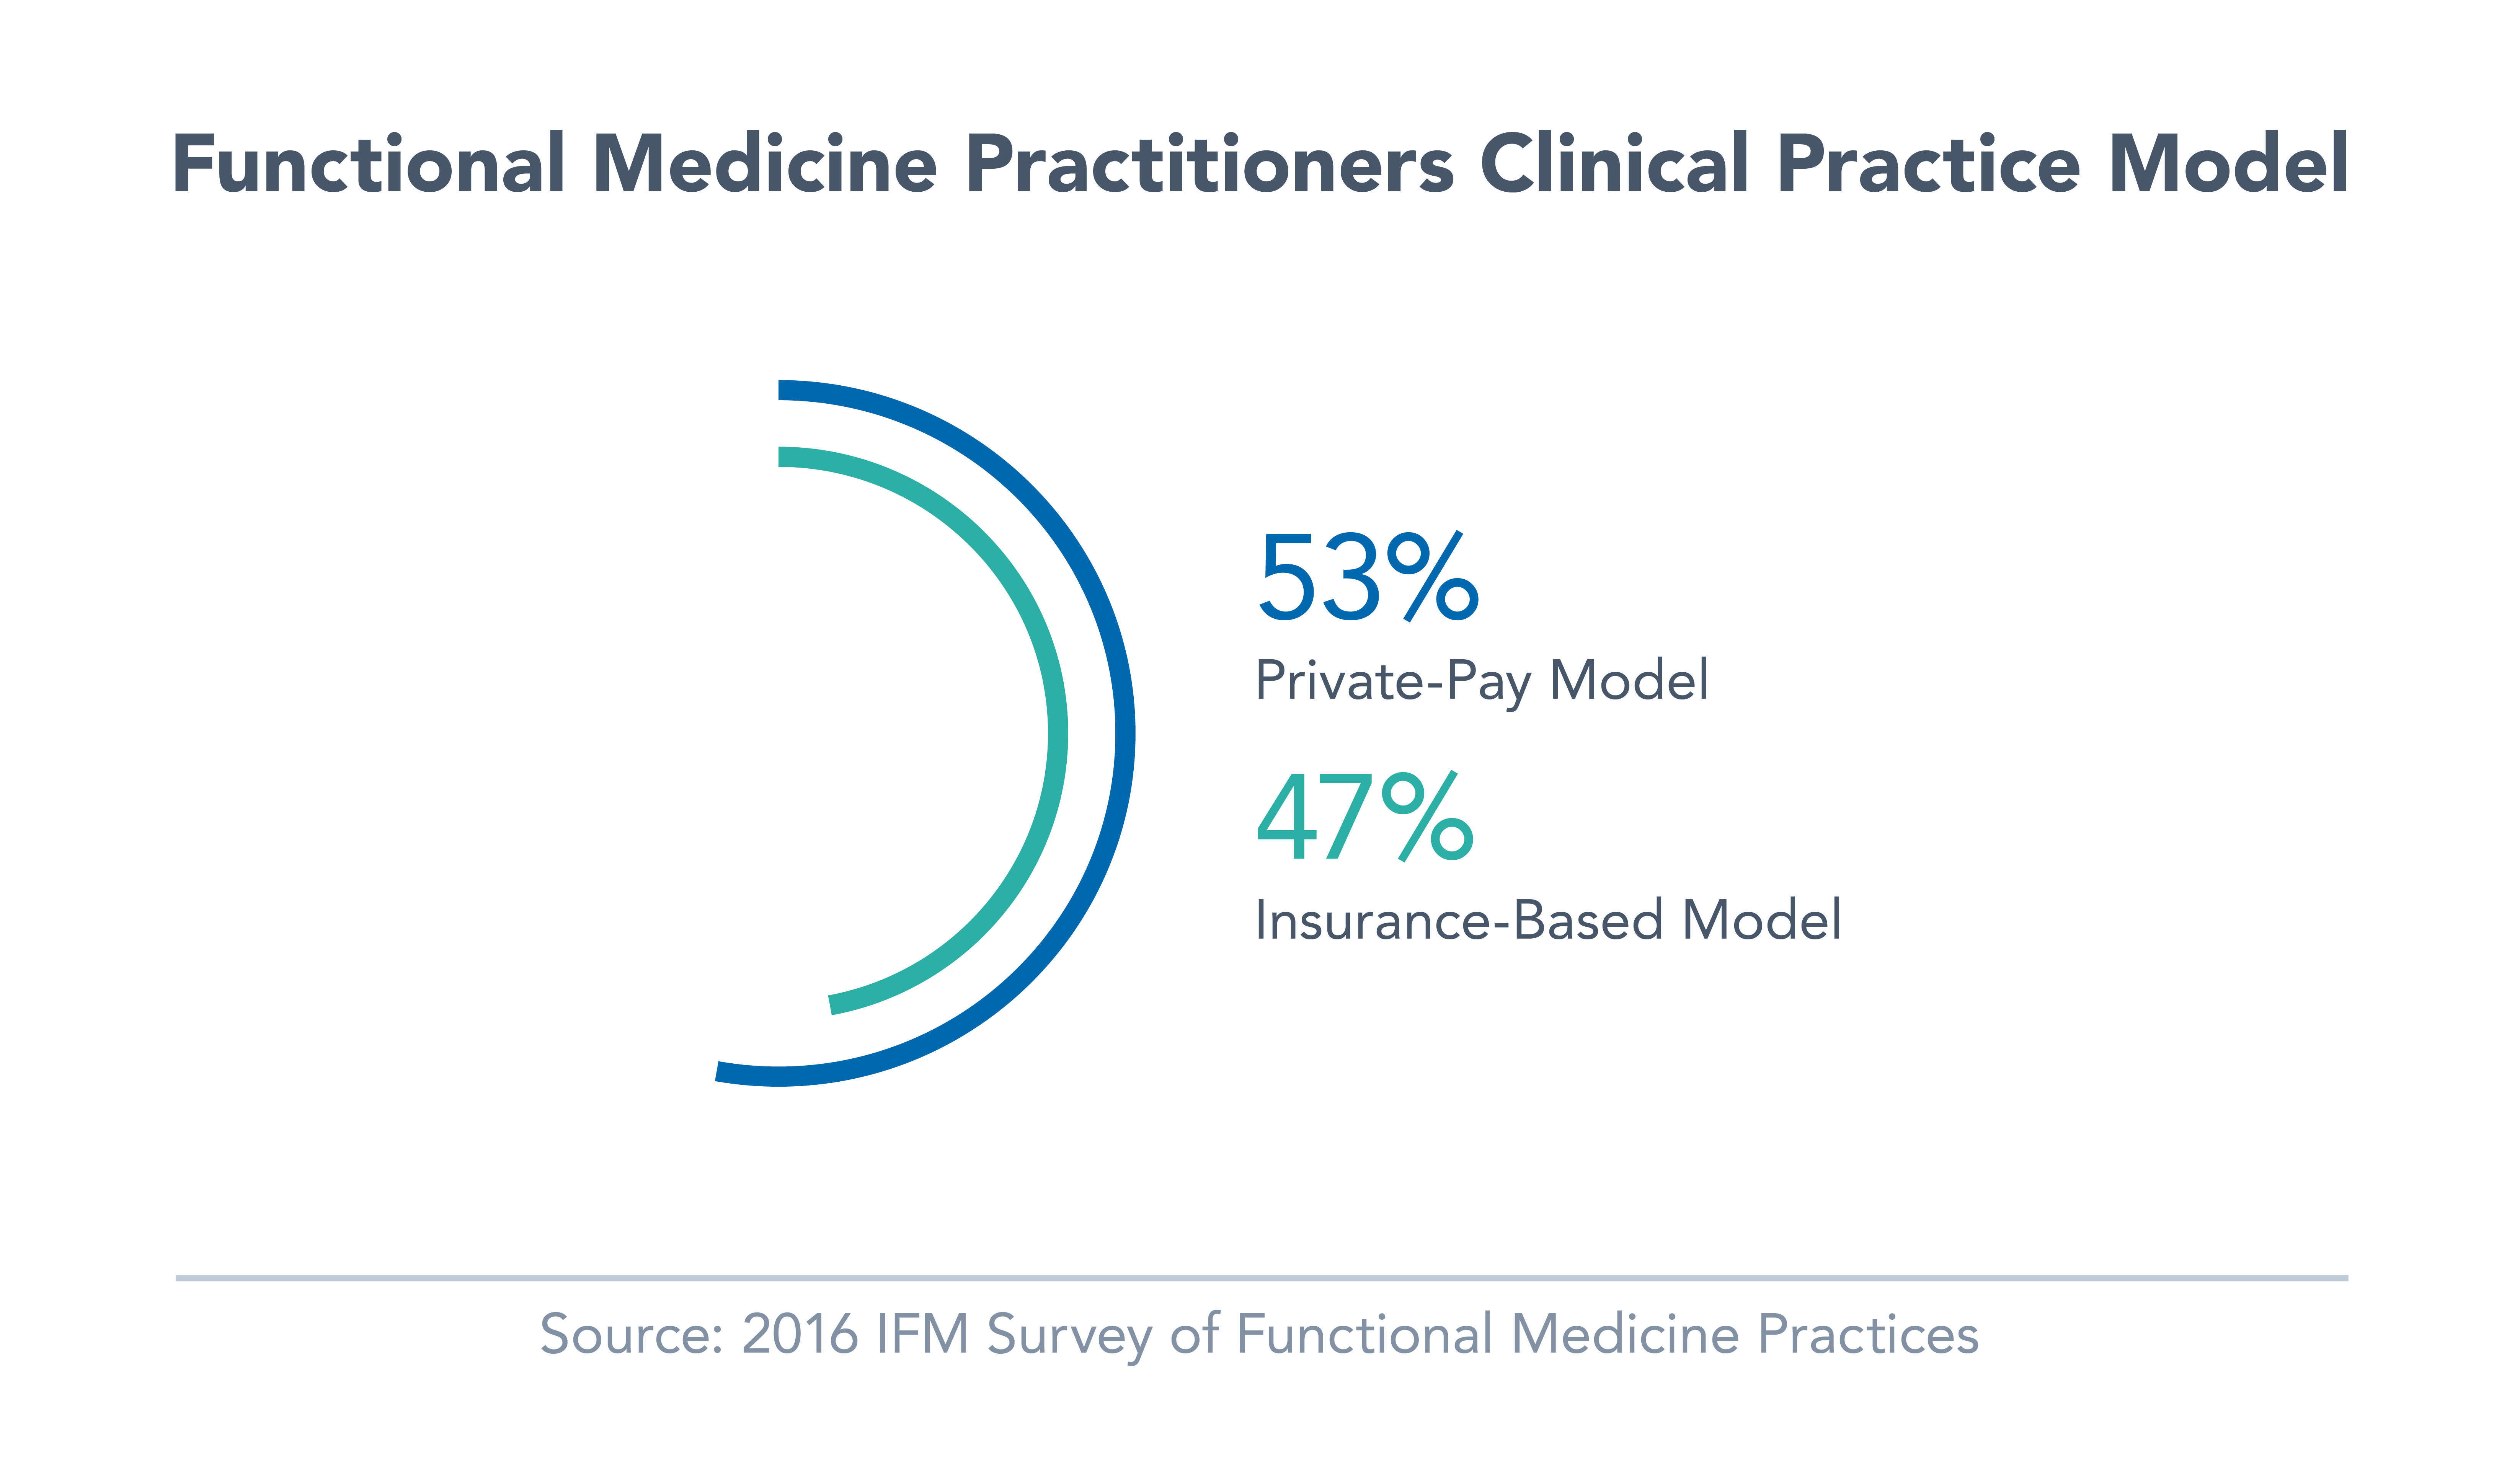 IFM polled its clinicians to determine if their practice is an insurance-based model or a private-pay model